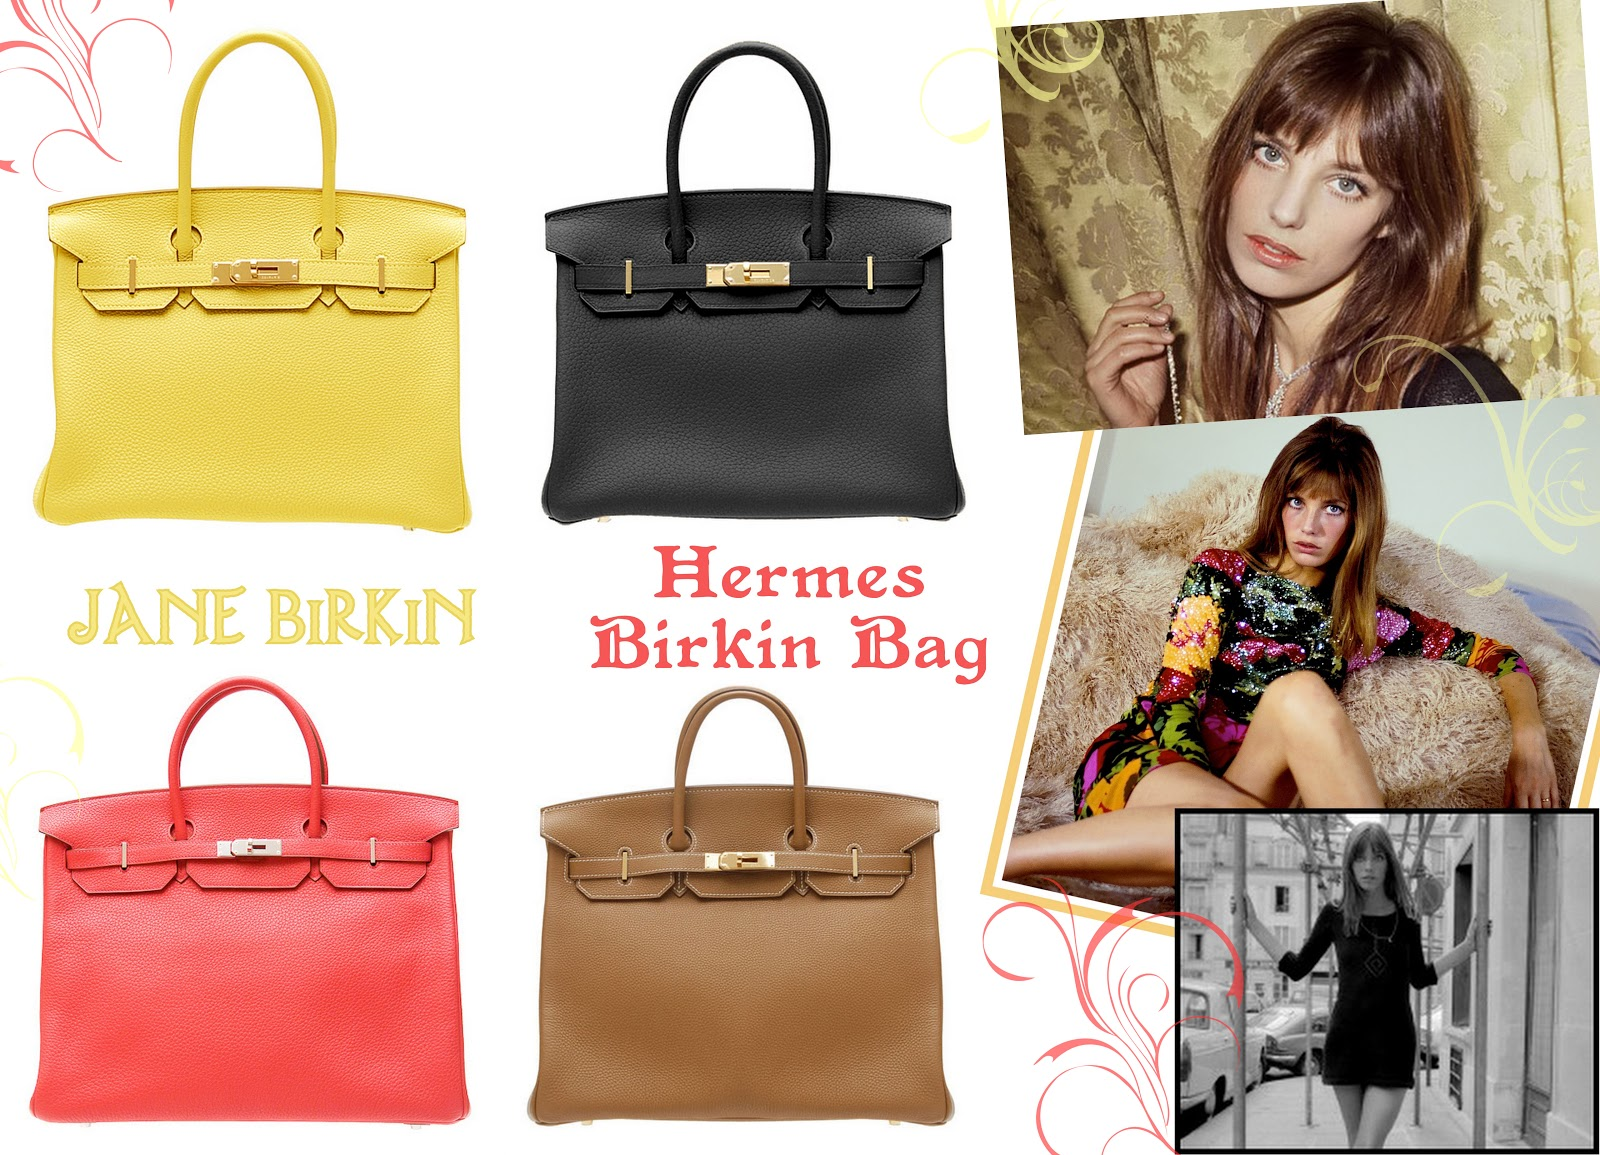 ceb945b85 Arguably the most famous of all namesake bags, The Hermés Birkin bag is  also the most expensive, ranging anywhere from $10 000 to $150 000.